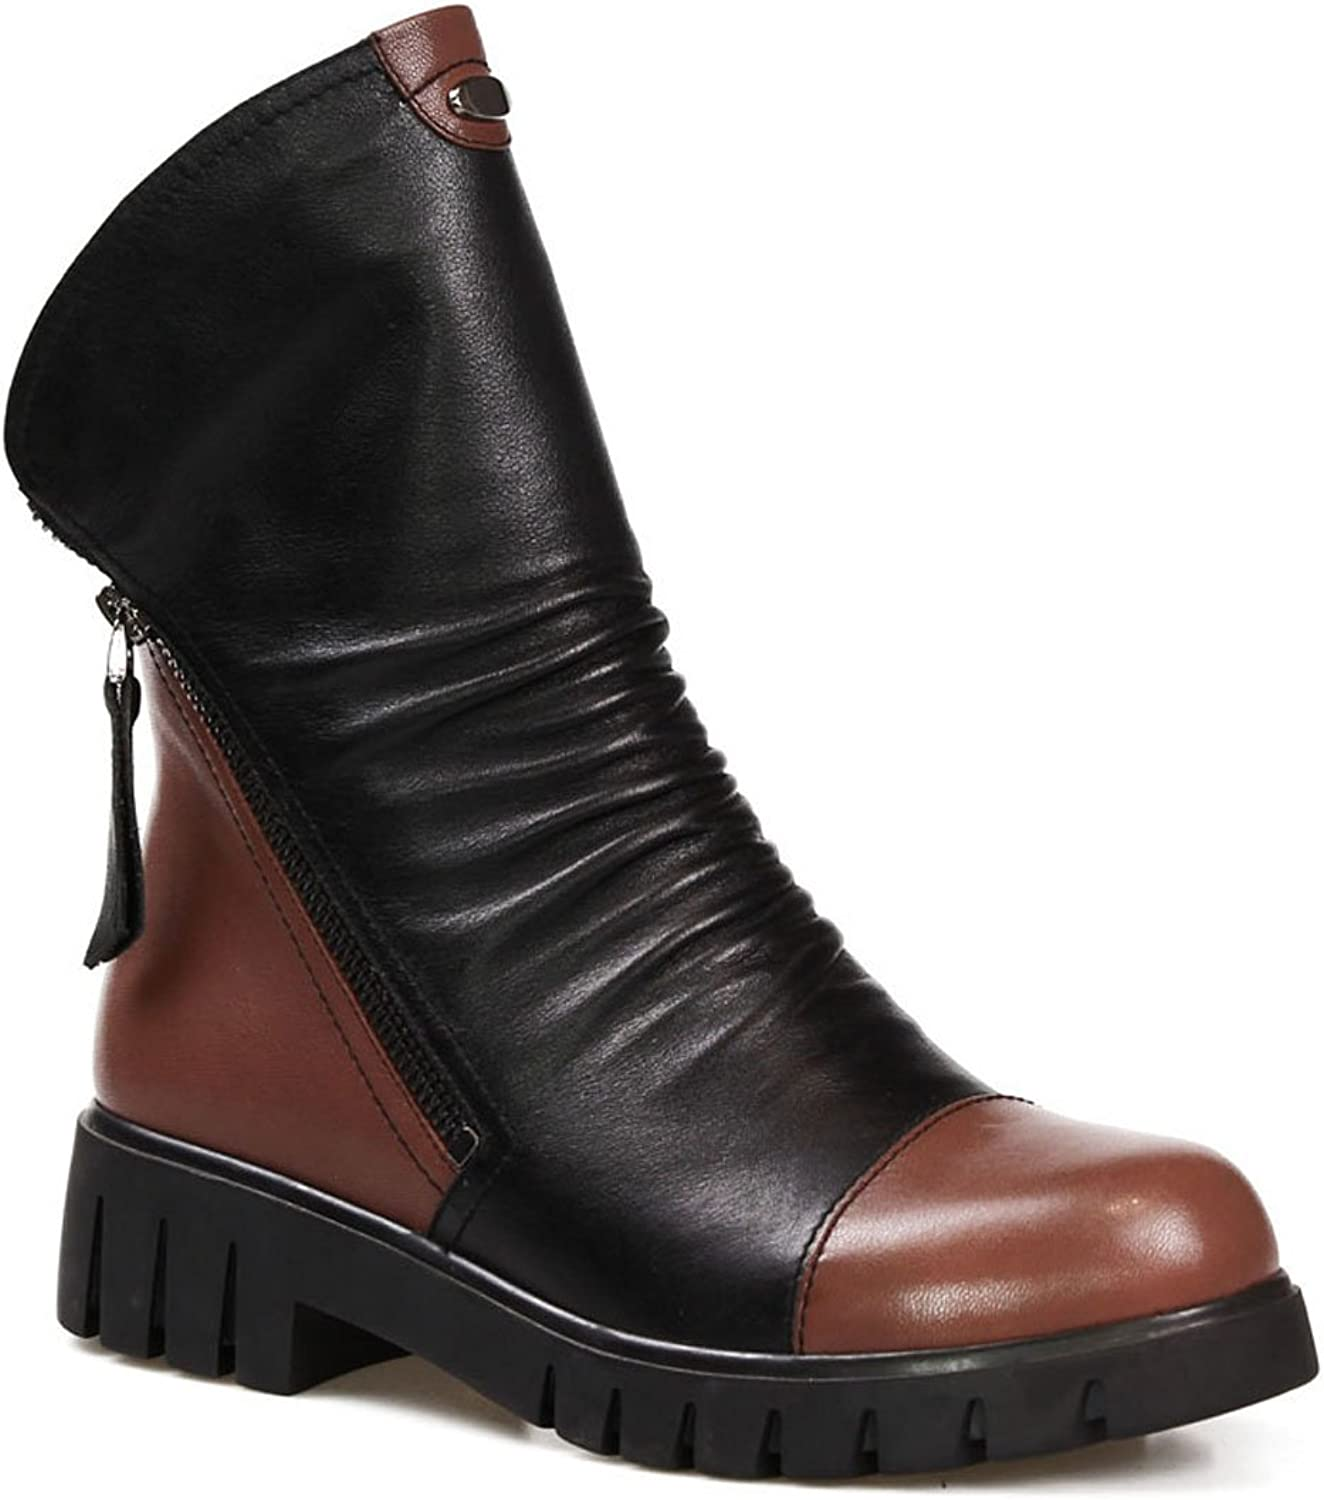 LIDIAN Women's Leather Autumn Winter Ankle Boots